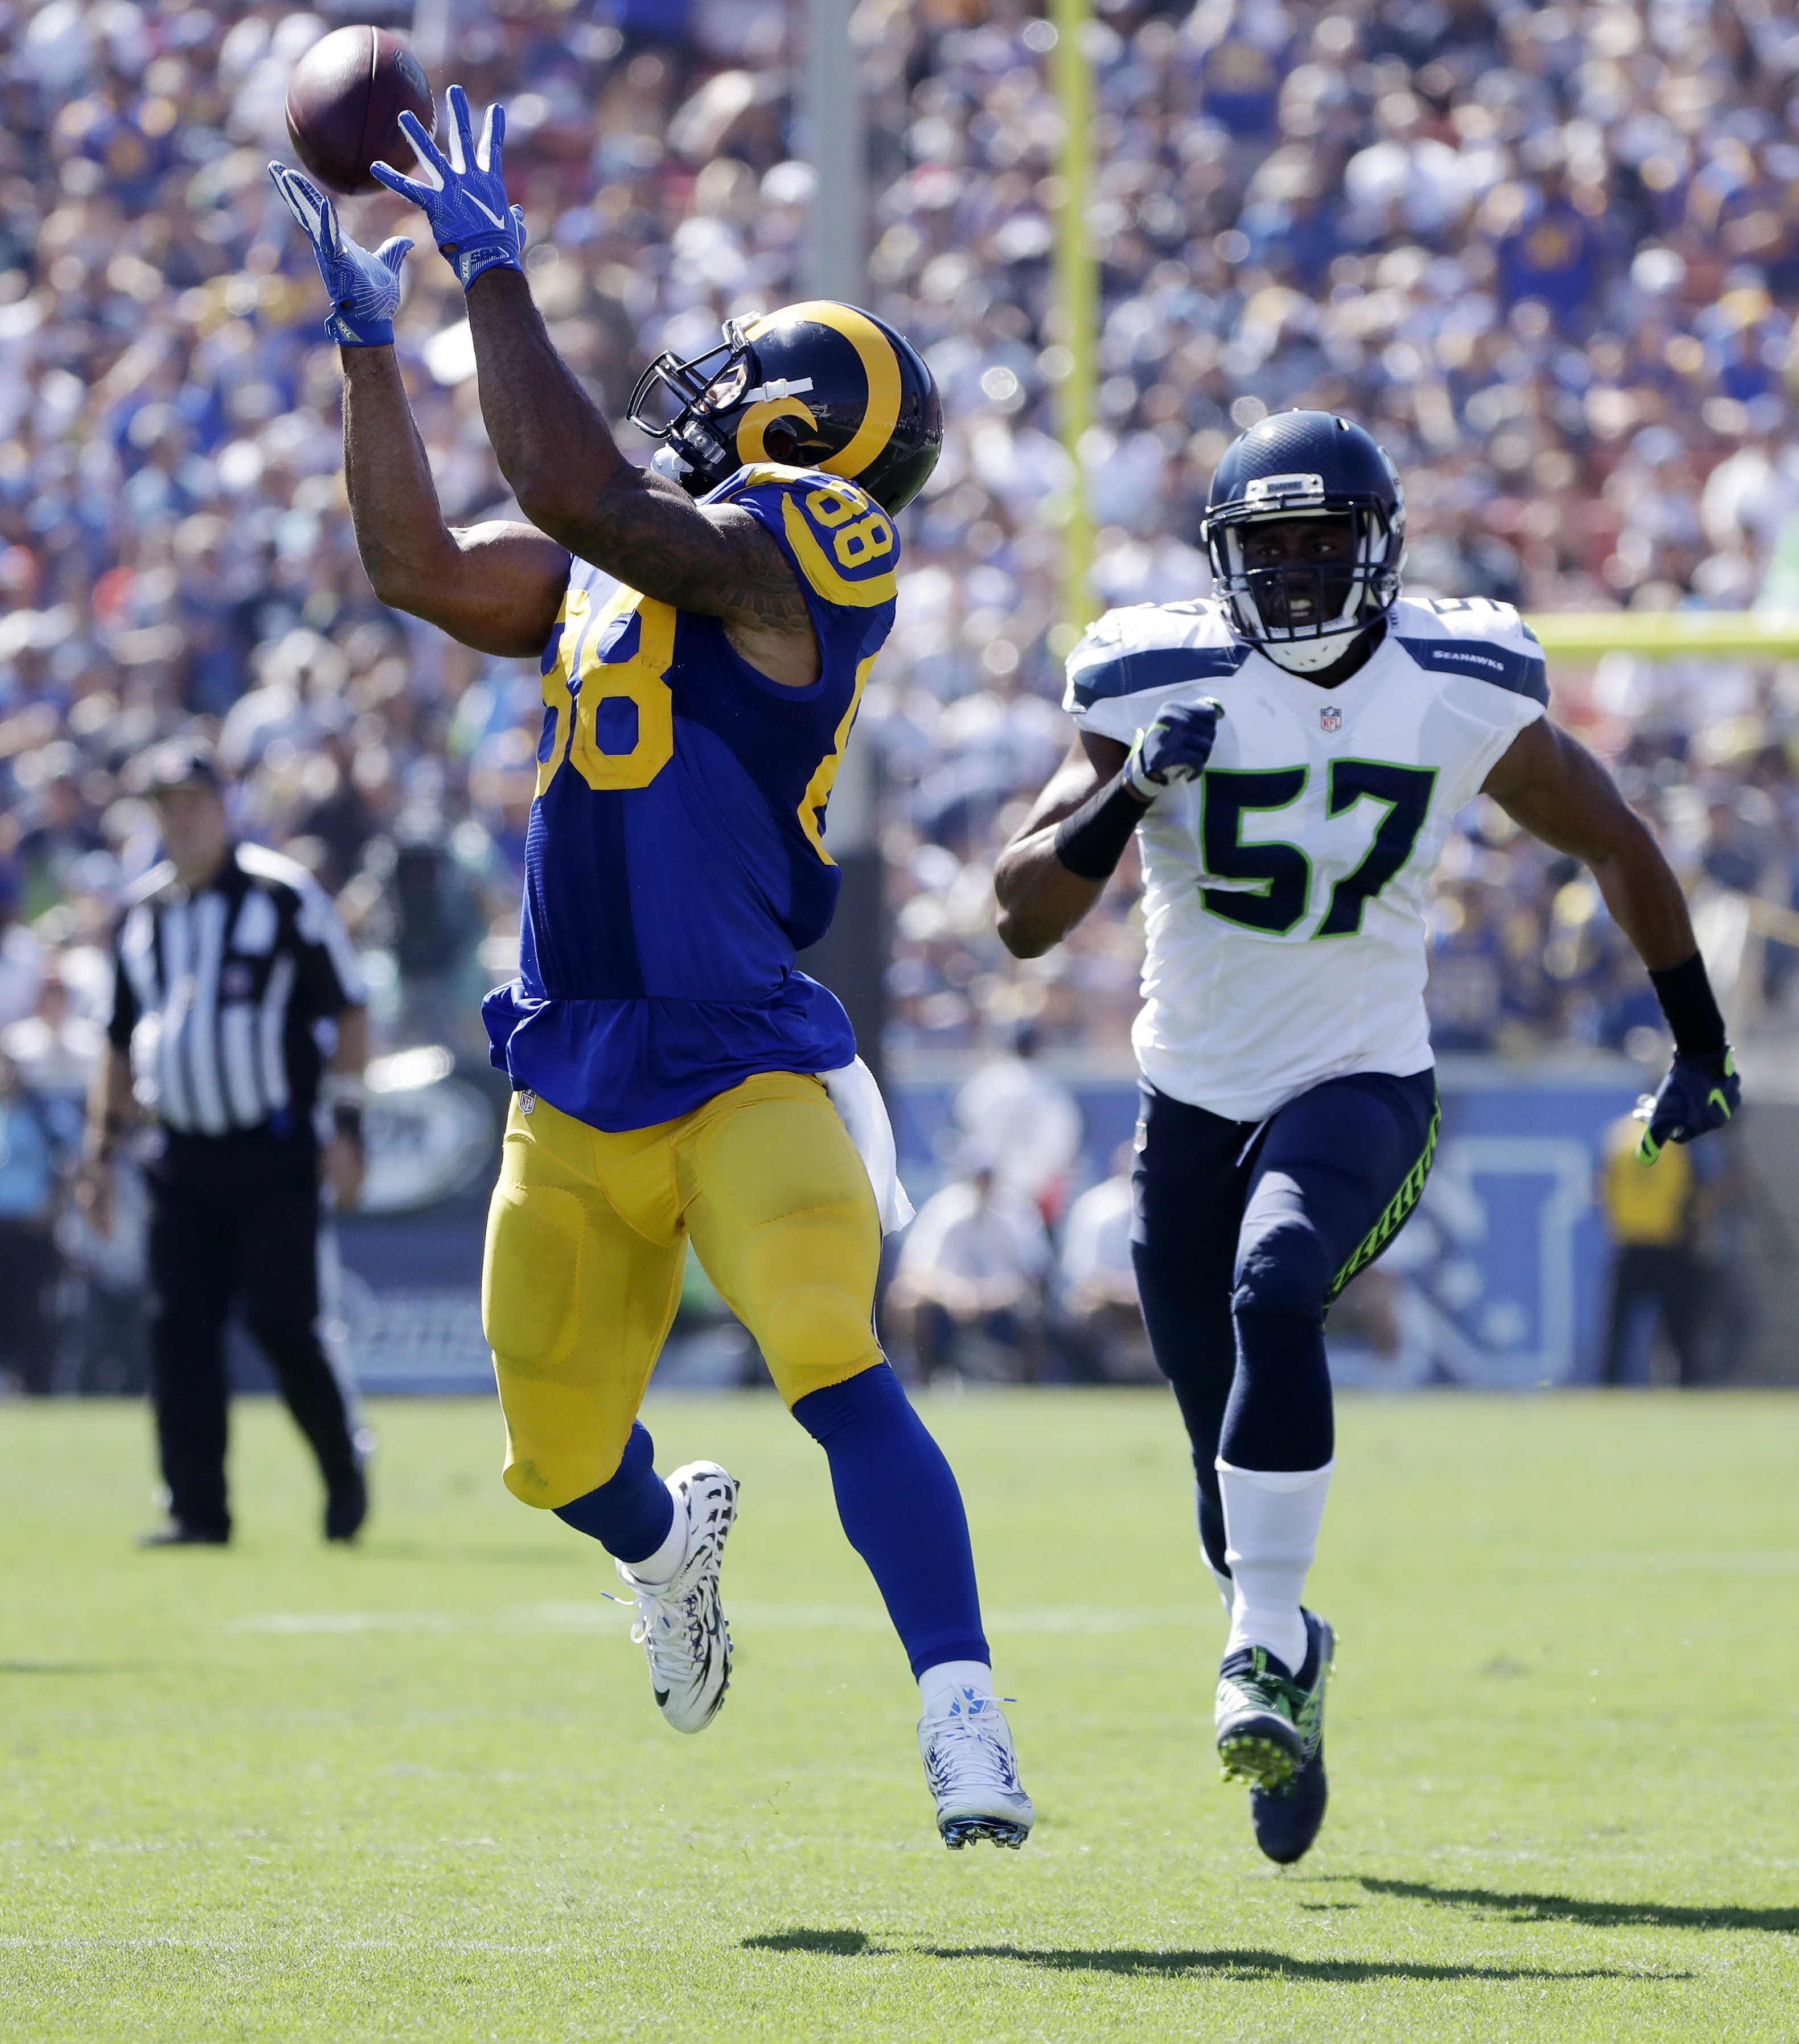 Los Angeles Rams tight end Lance Kendricks, left, makes a catch as Seattle Seahawks outside linebacker Mike Morgan pursues during the first half an NFL football game at Los Angeles Memorial Coliseum, Sunday, Sept. 18, 2016, in Los Angeles. (AP Photo/Jae H